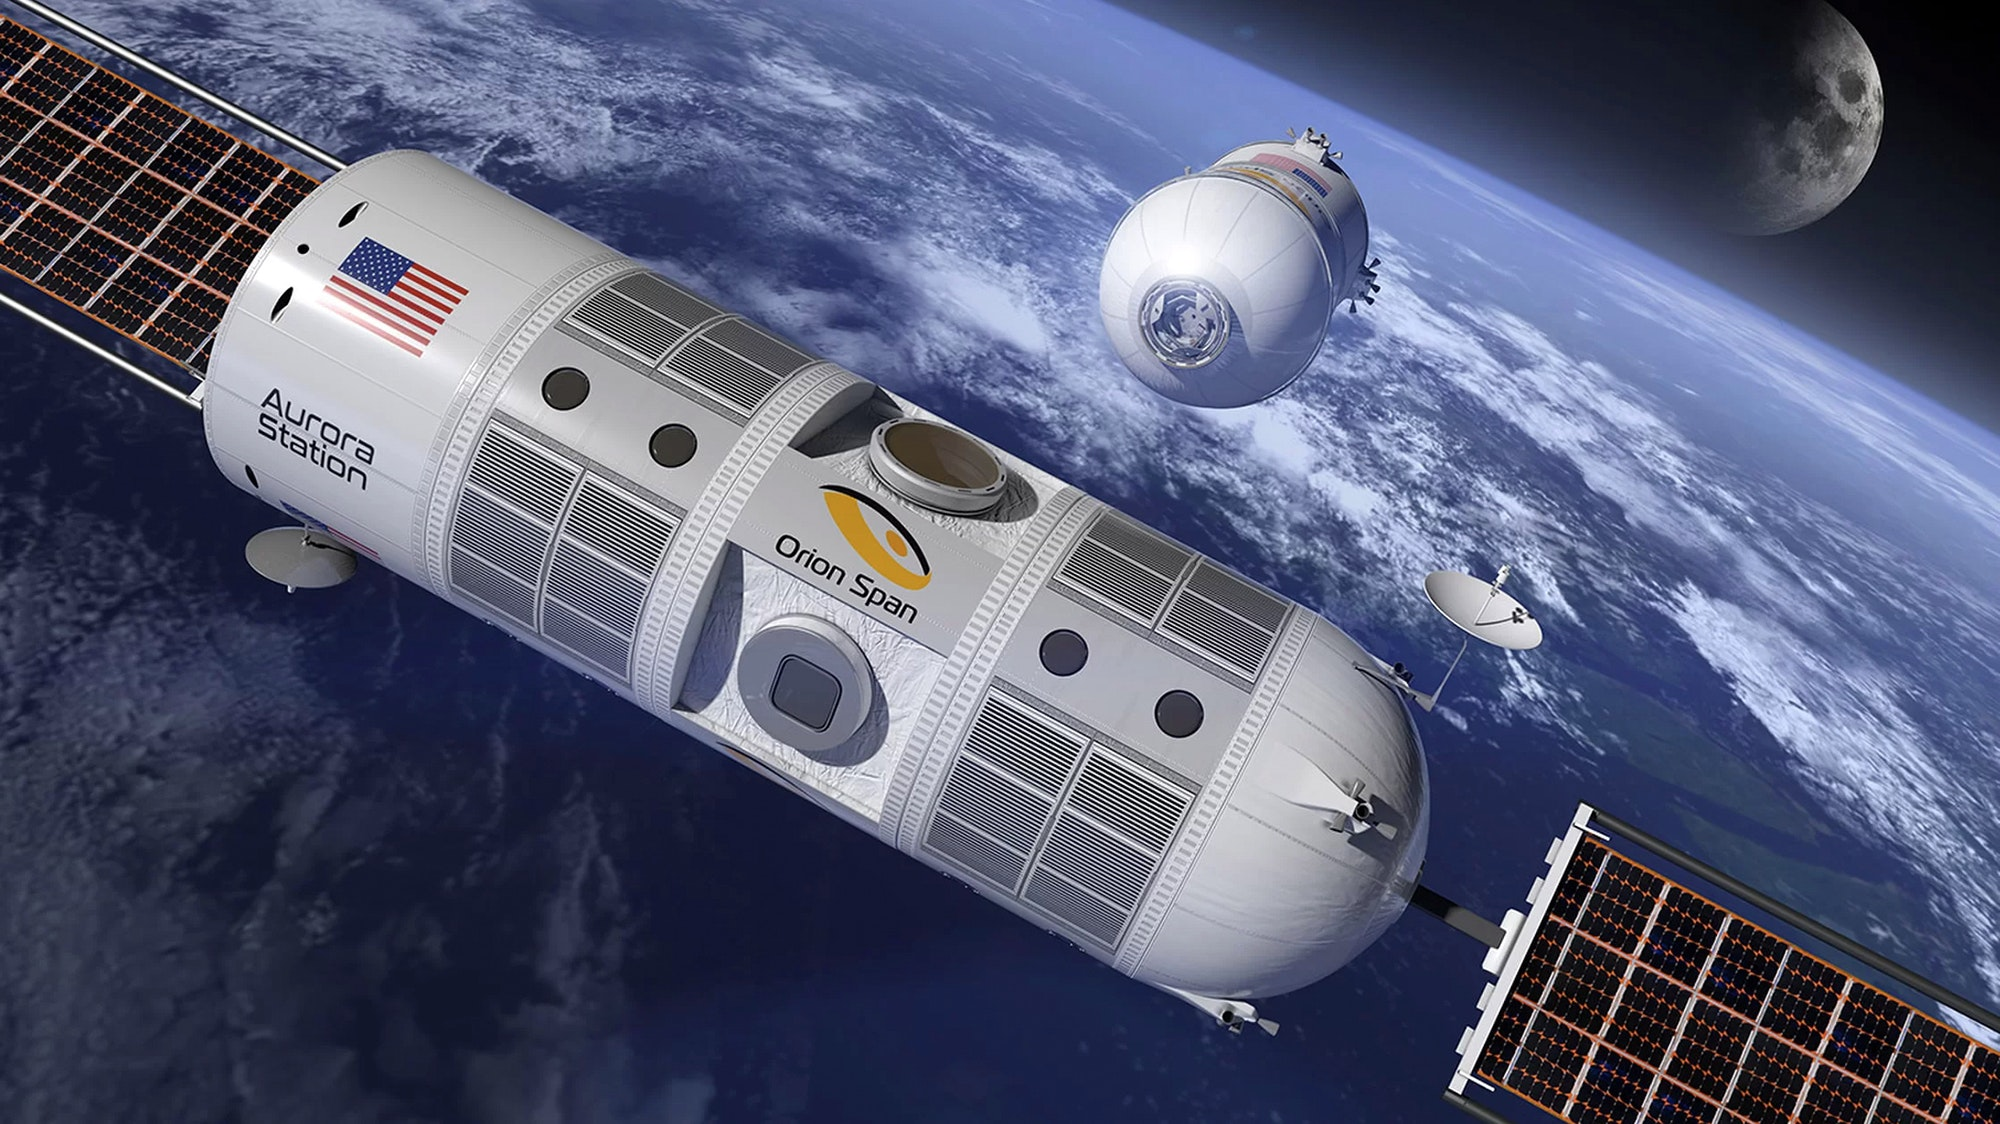 The hotel will orbit Earth every 90 minutes, which means those aboard will see an average of 16 sunrises and sunsets every 24 hours.